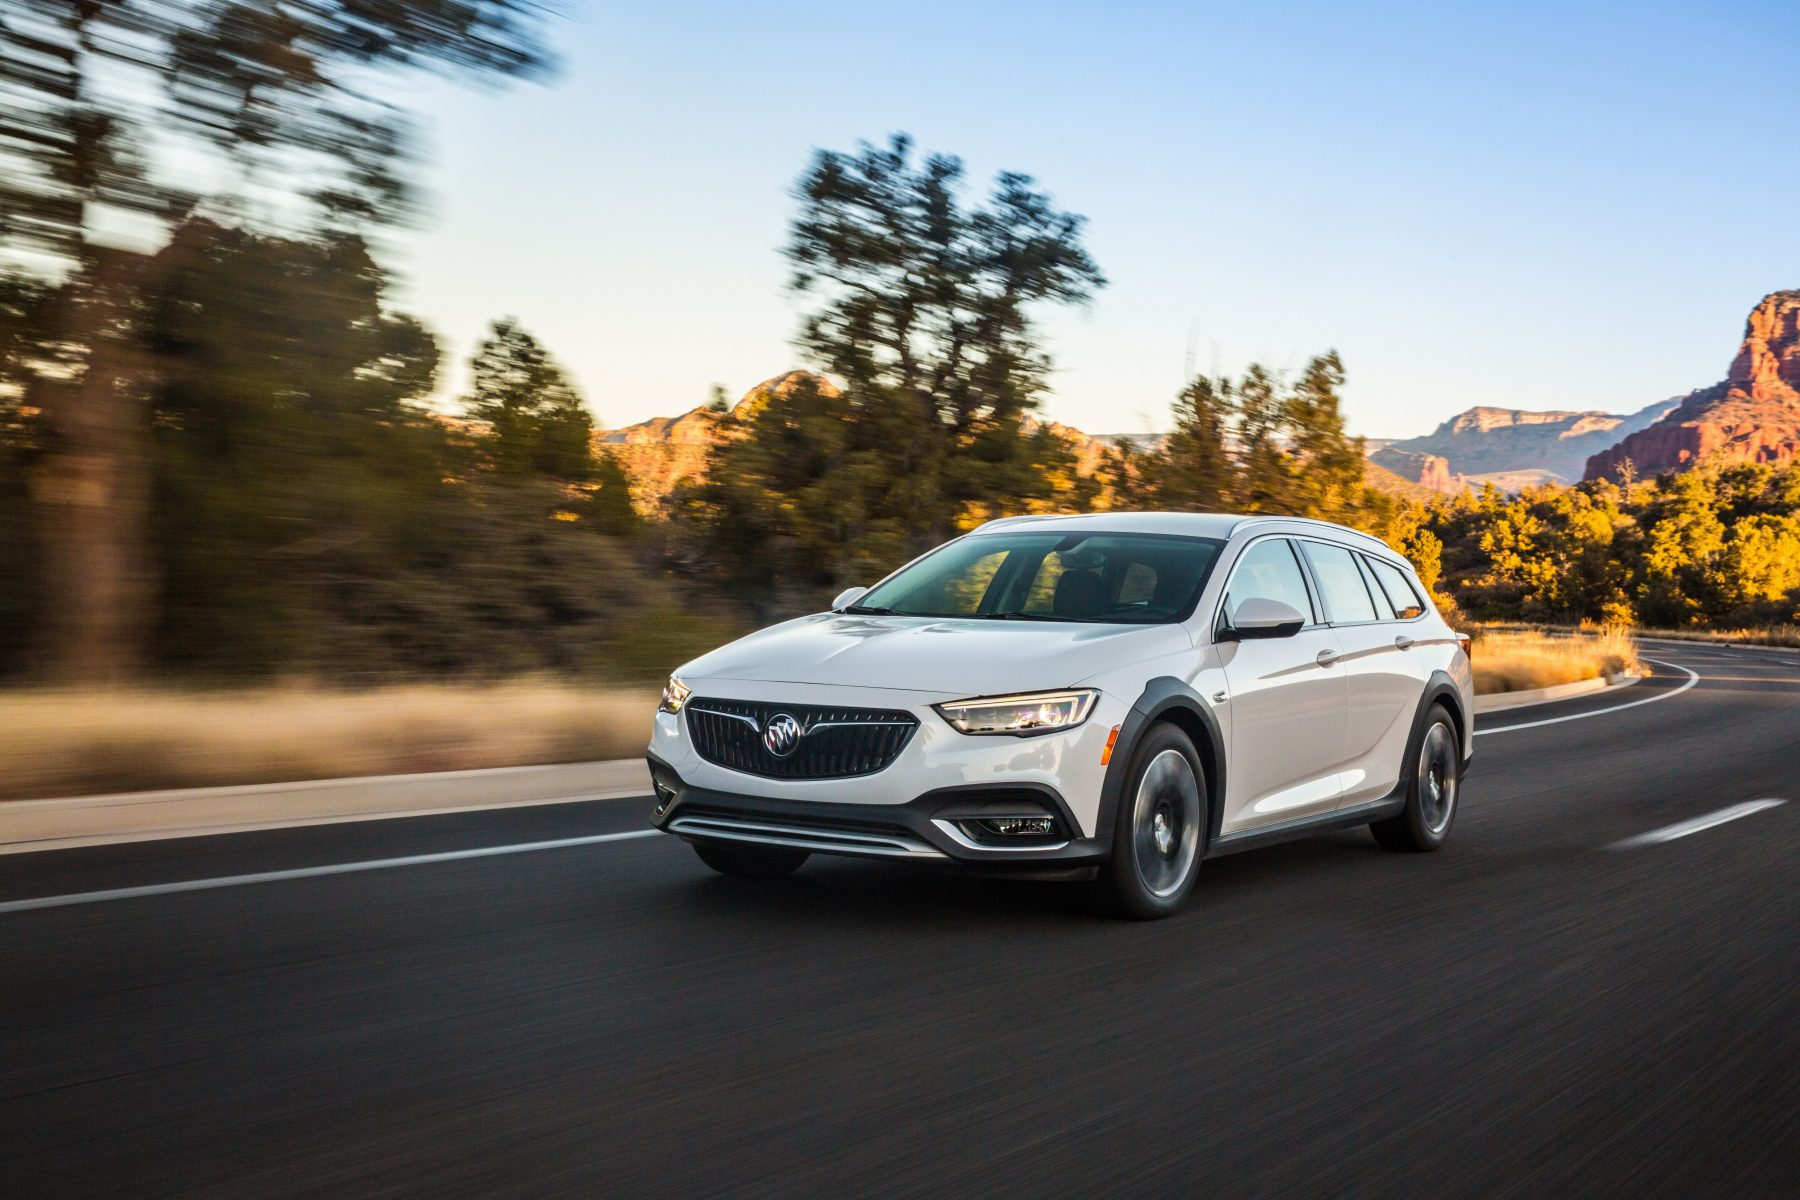 2018 Buick Regal Tourx Second Take: King Of The Wagon 2022 Buick Regal Tourx Discontinued, Mpg, Engine